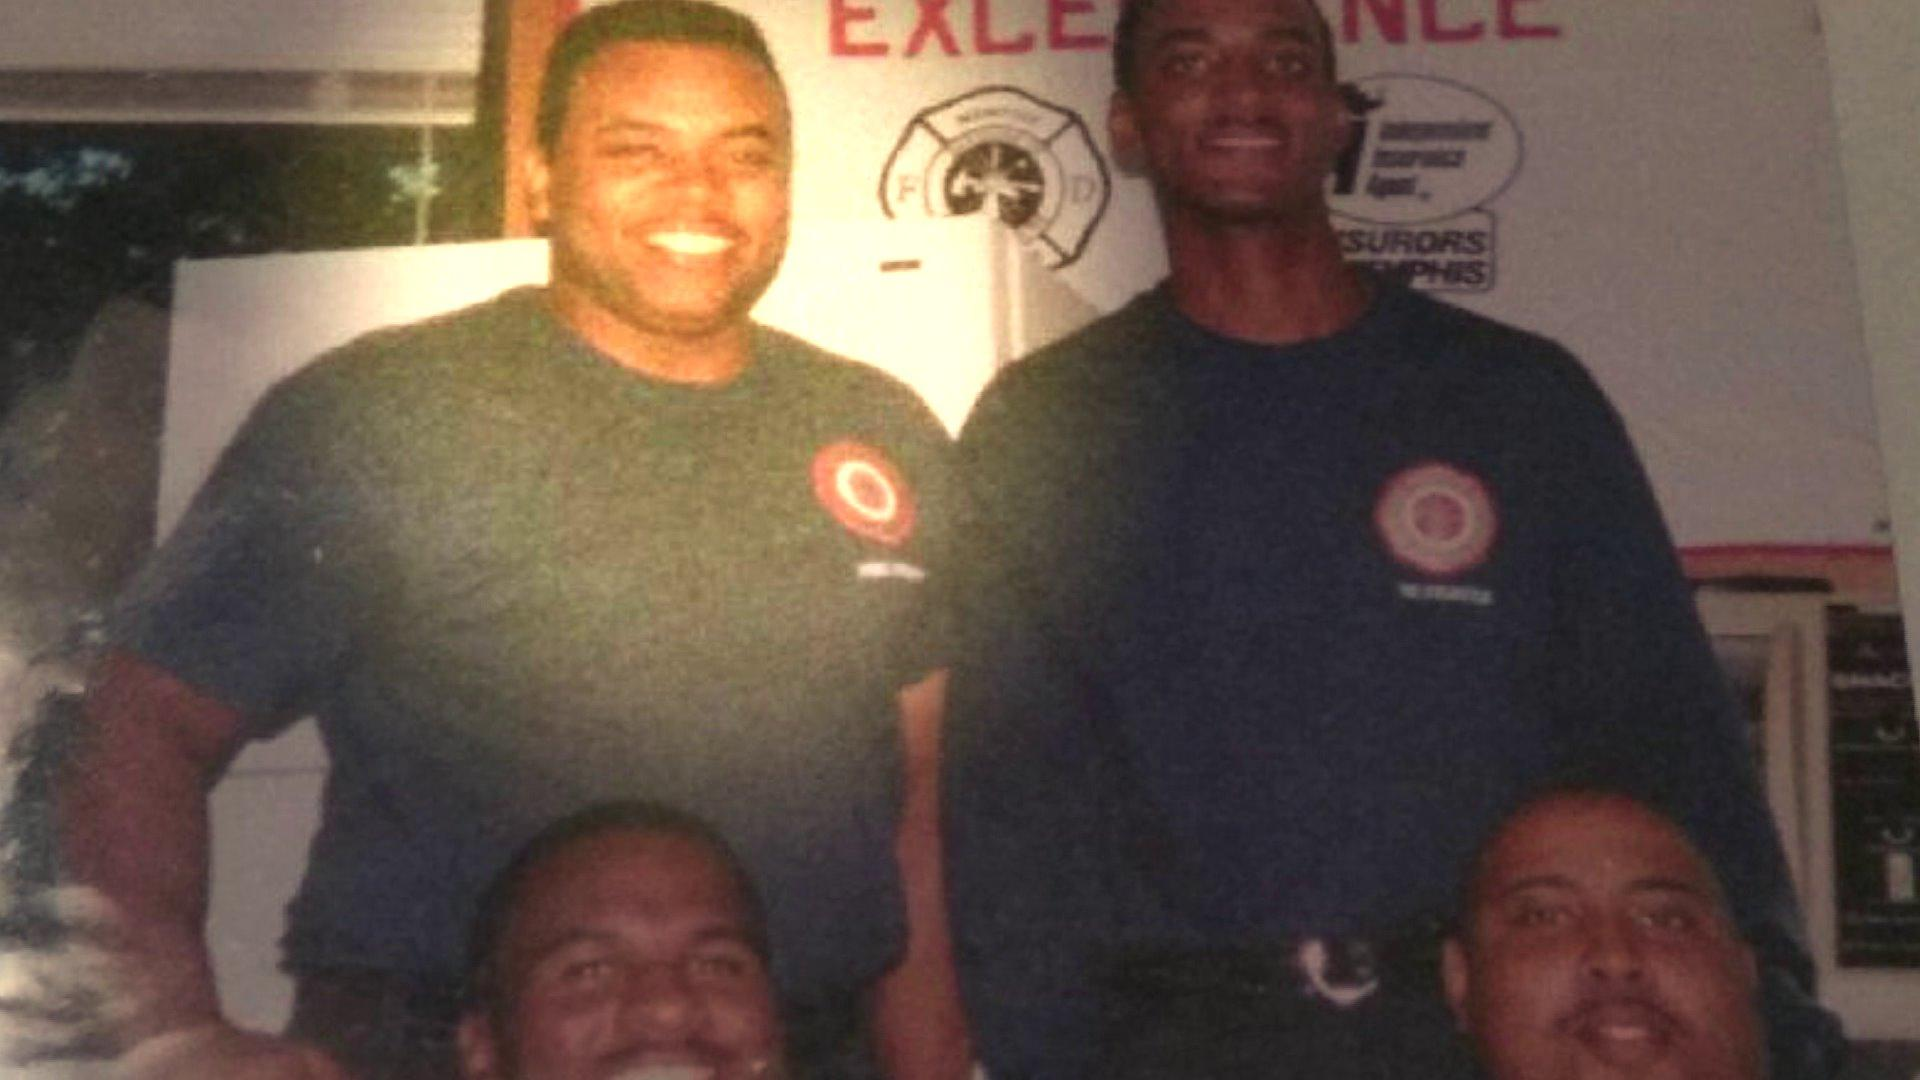 Man Helps Memphis Firefighter Who Lost His Job Due to Cancer Diagnosis